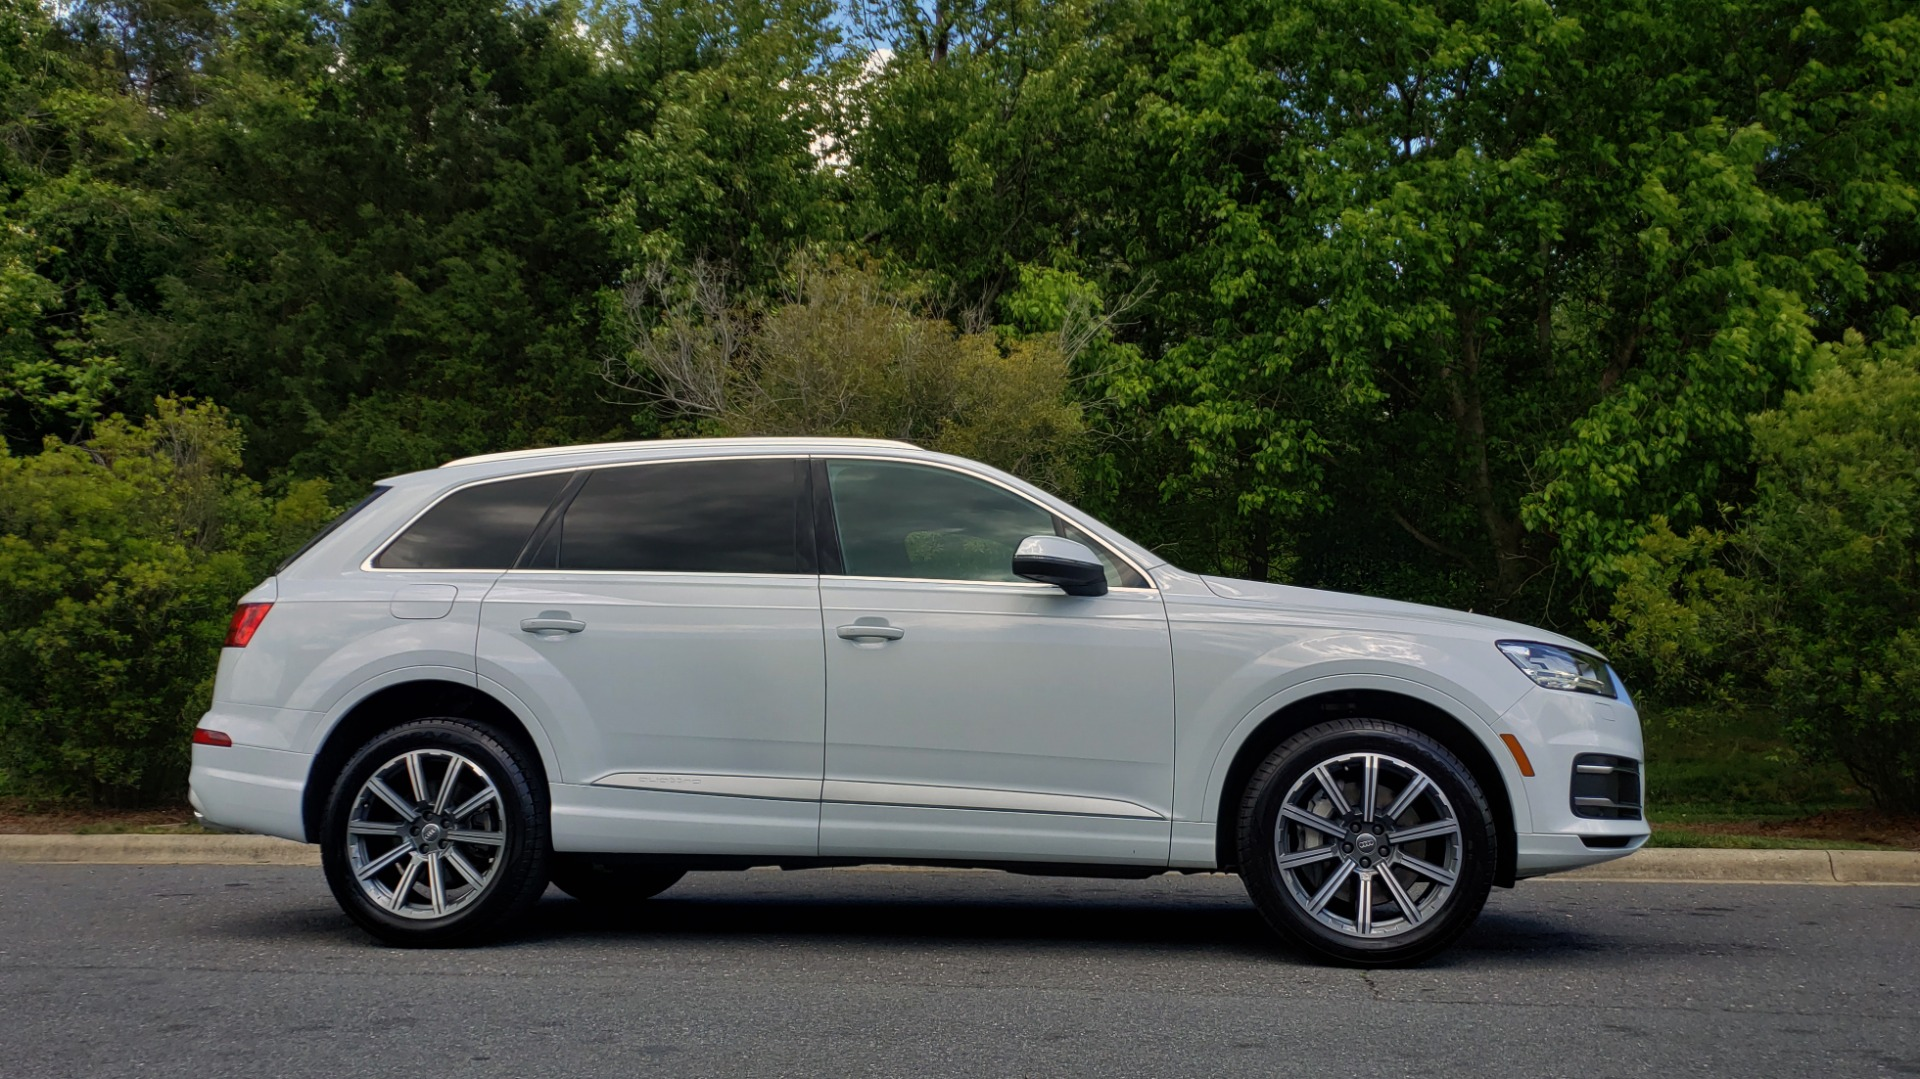 Used 2017 Audi Q7 PREMIUM PLUS / VISION PKG / NAV / PANO-ROOF / 3-ROW / REARVIEW for sale Sold at Formula Imports in Charlotte NC 28227 5